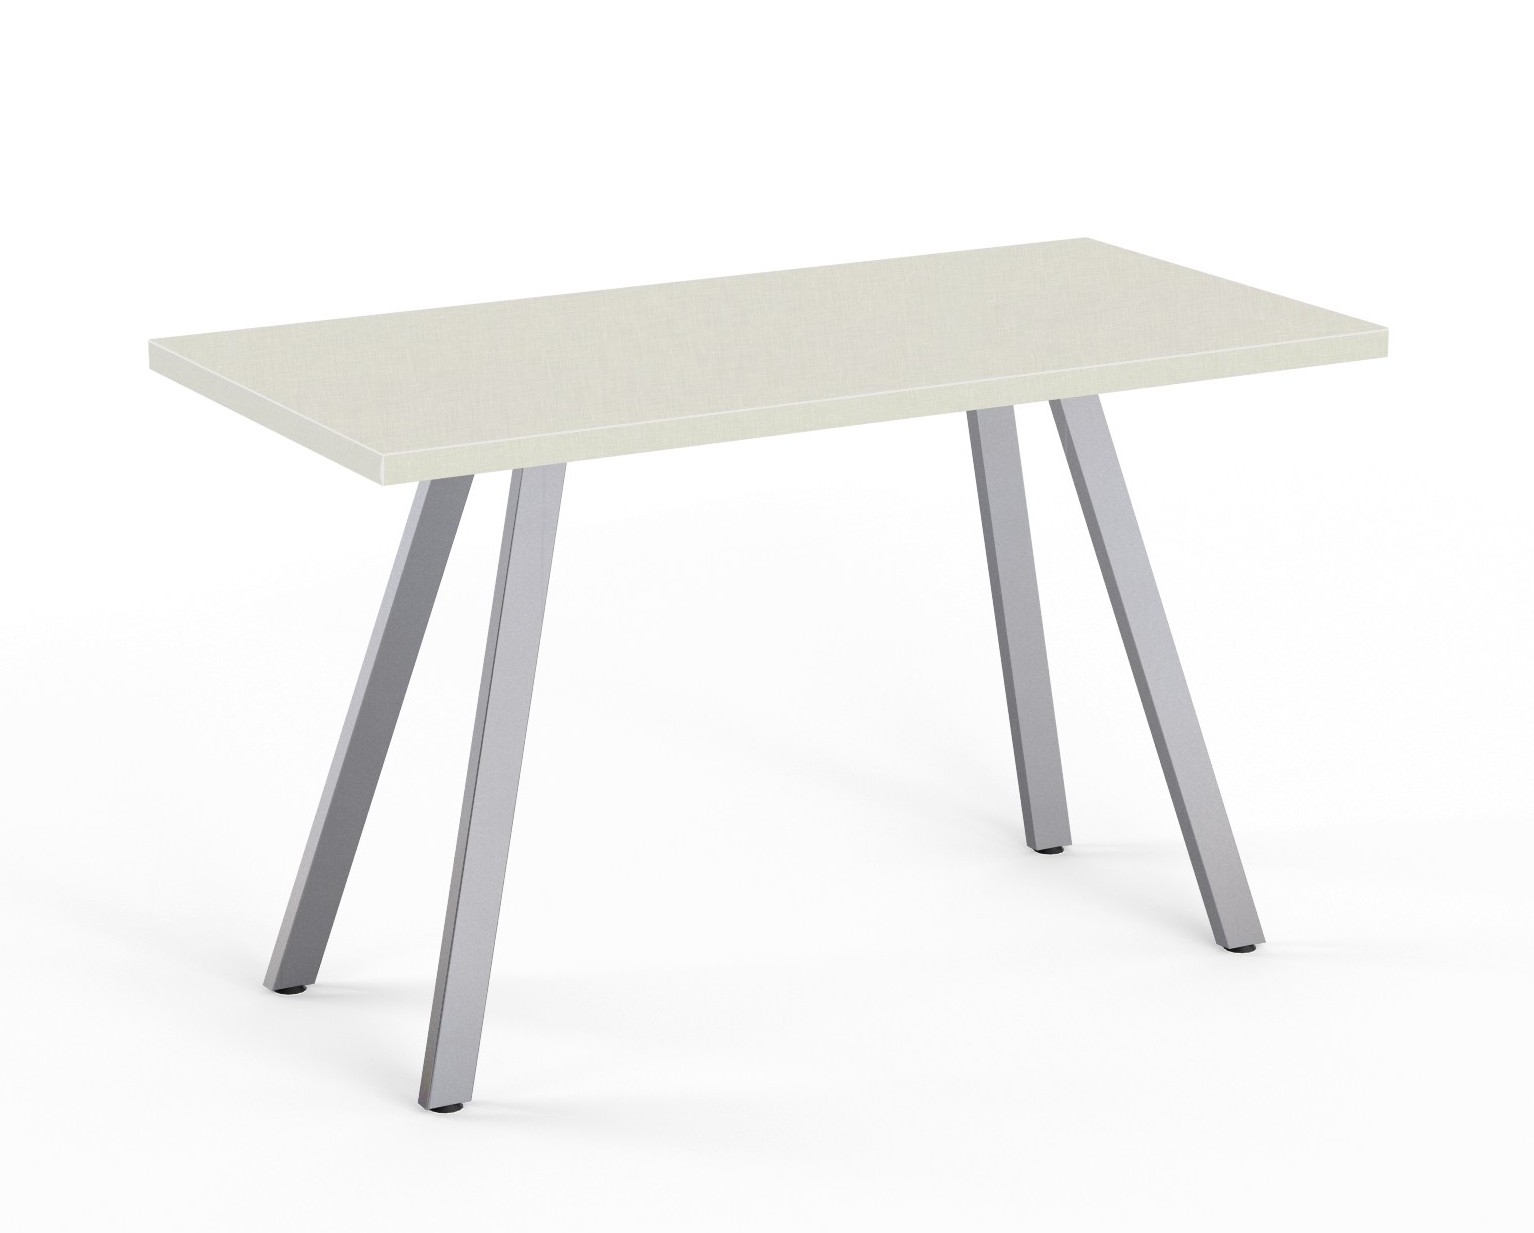 canvas aim table by special-t